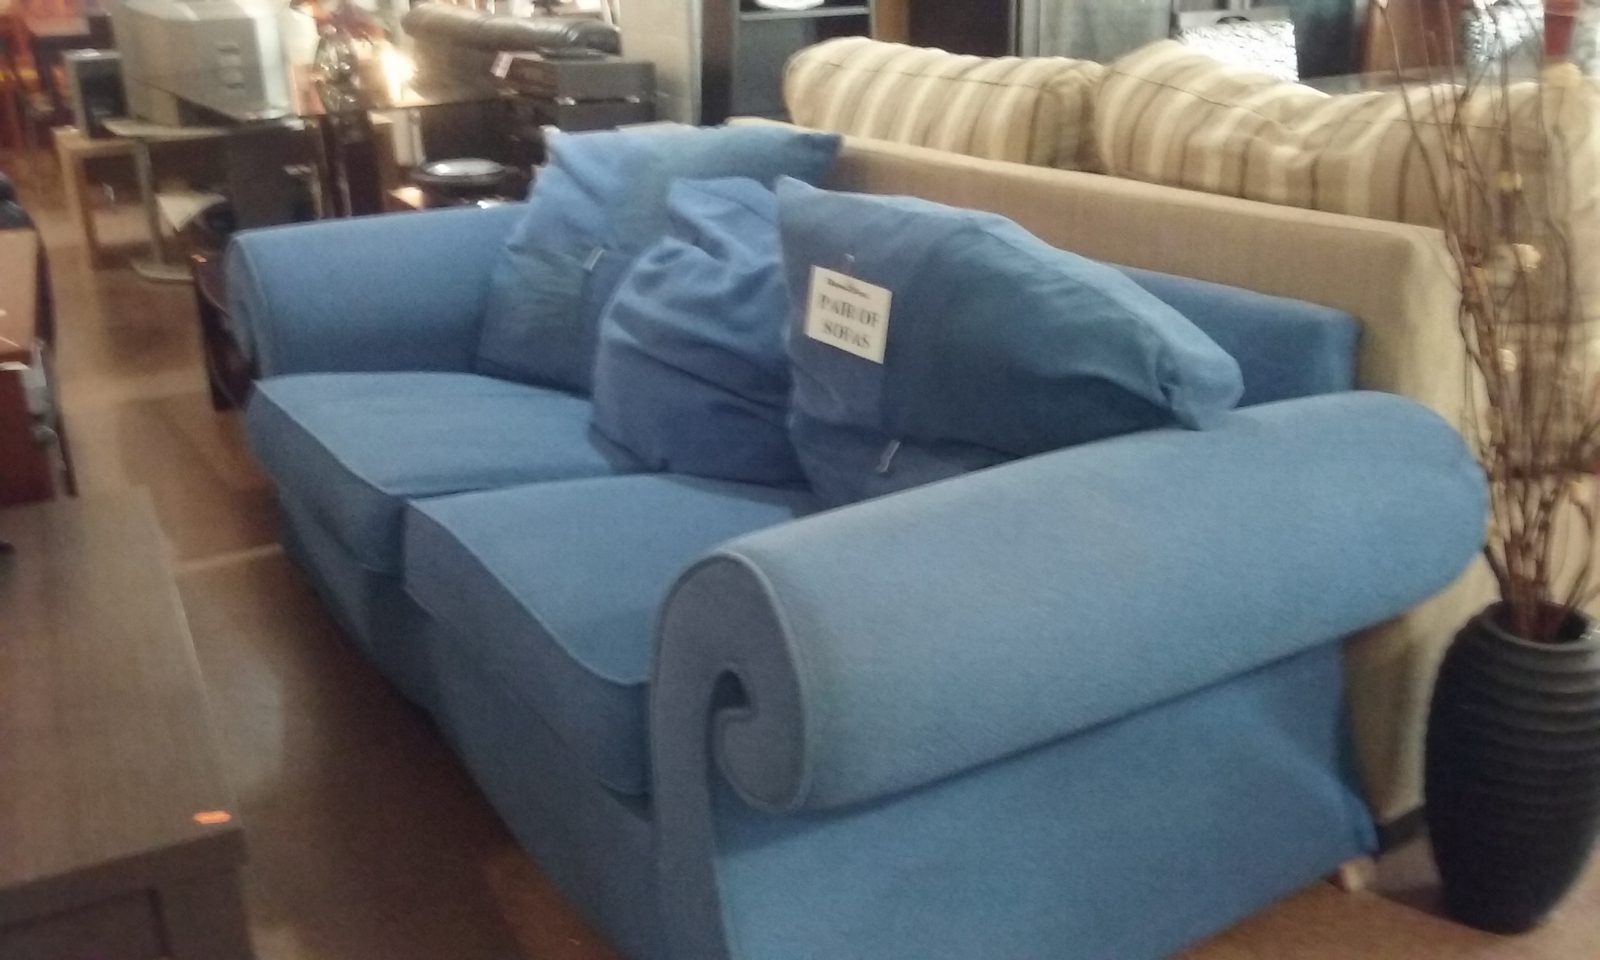 New2you Furniture Second Hand Sofas Sofa Beds For The